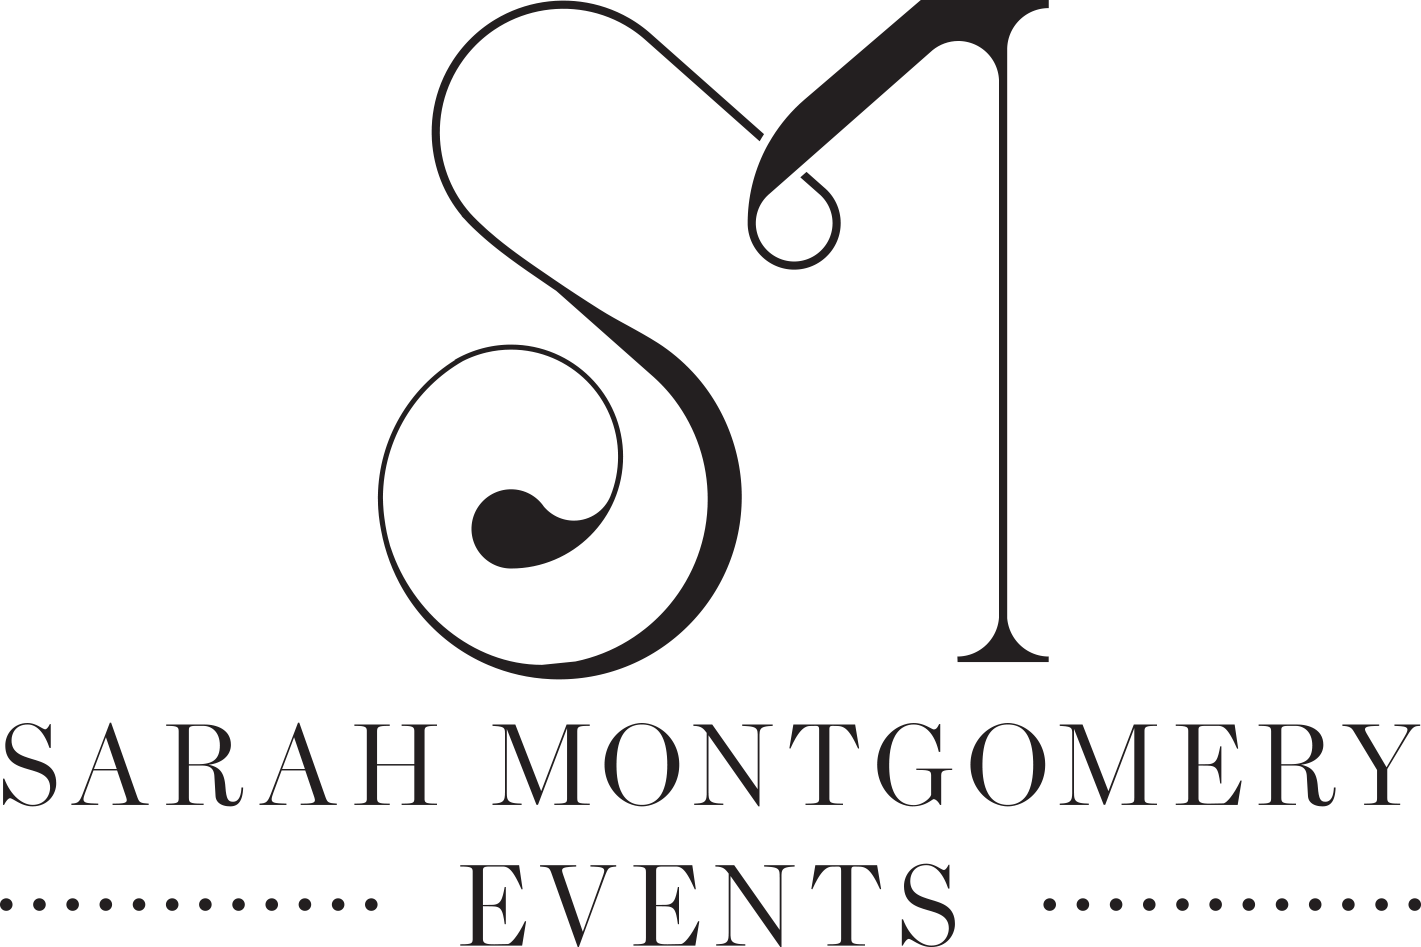 Sarah Montgomery Events